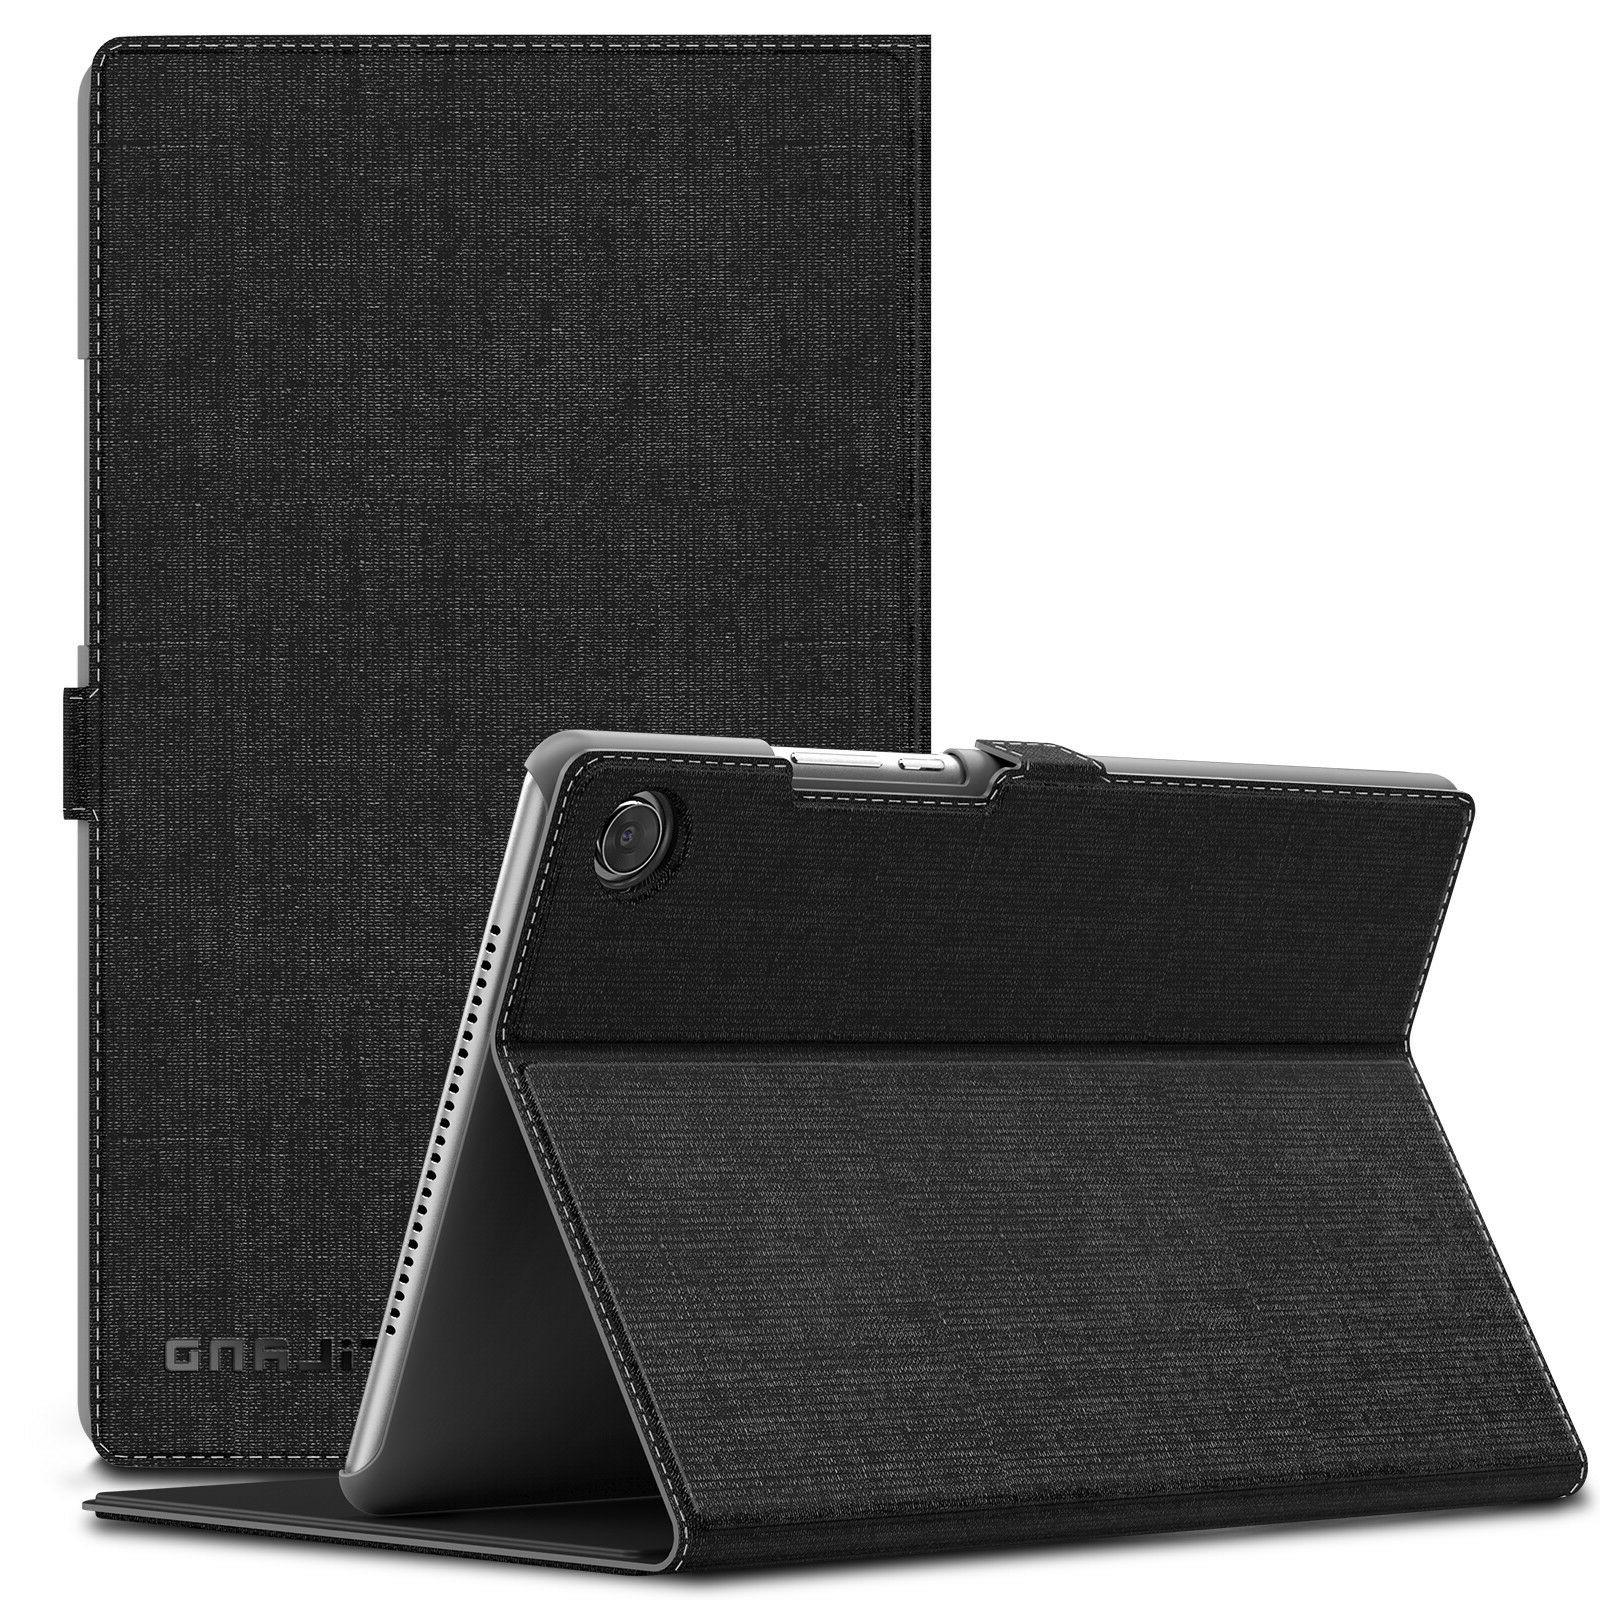 Infiland Multi-Angle Viewing Stand Tablet Case Cover for Hua